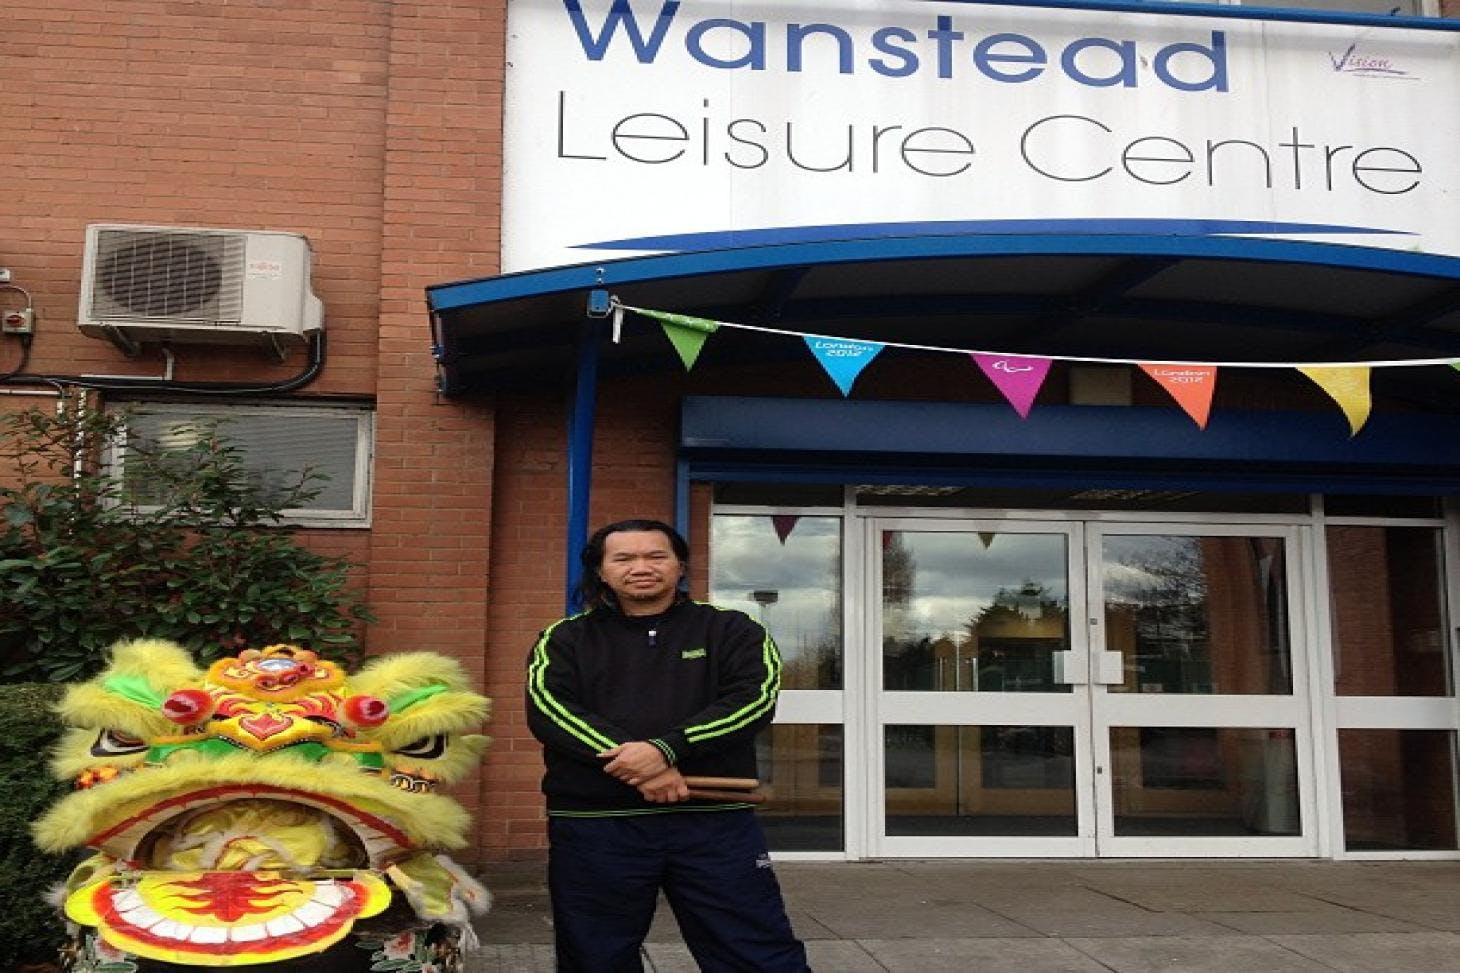 Wanstead Leisure Centre 5 a side | Grass football pitch